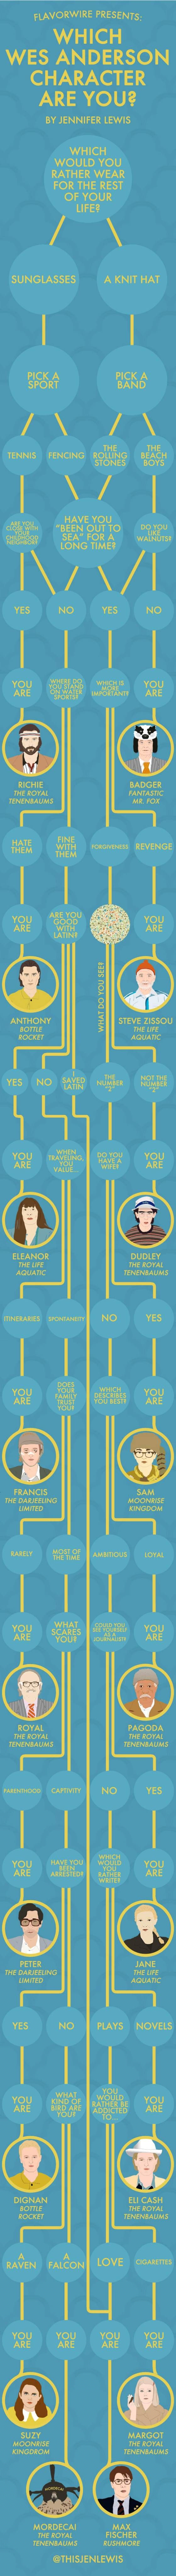 So, Which Wes Anderson Character Are You? -- Vulture